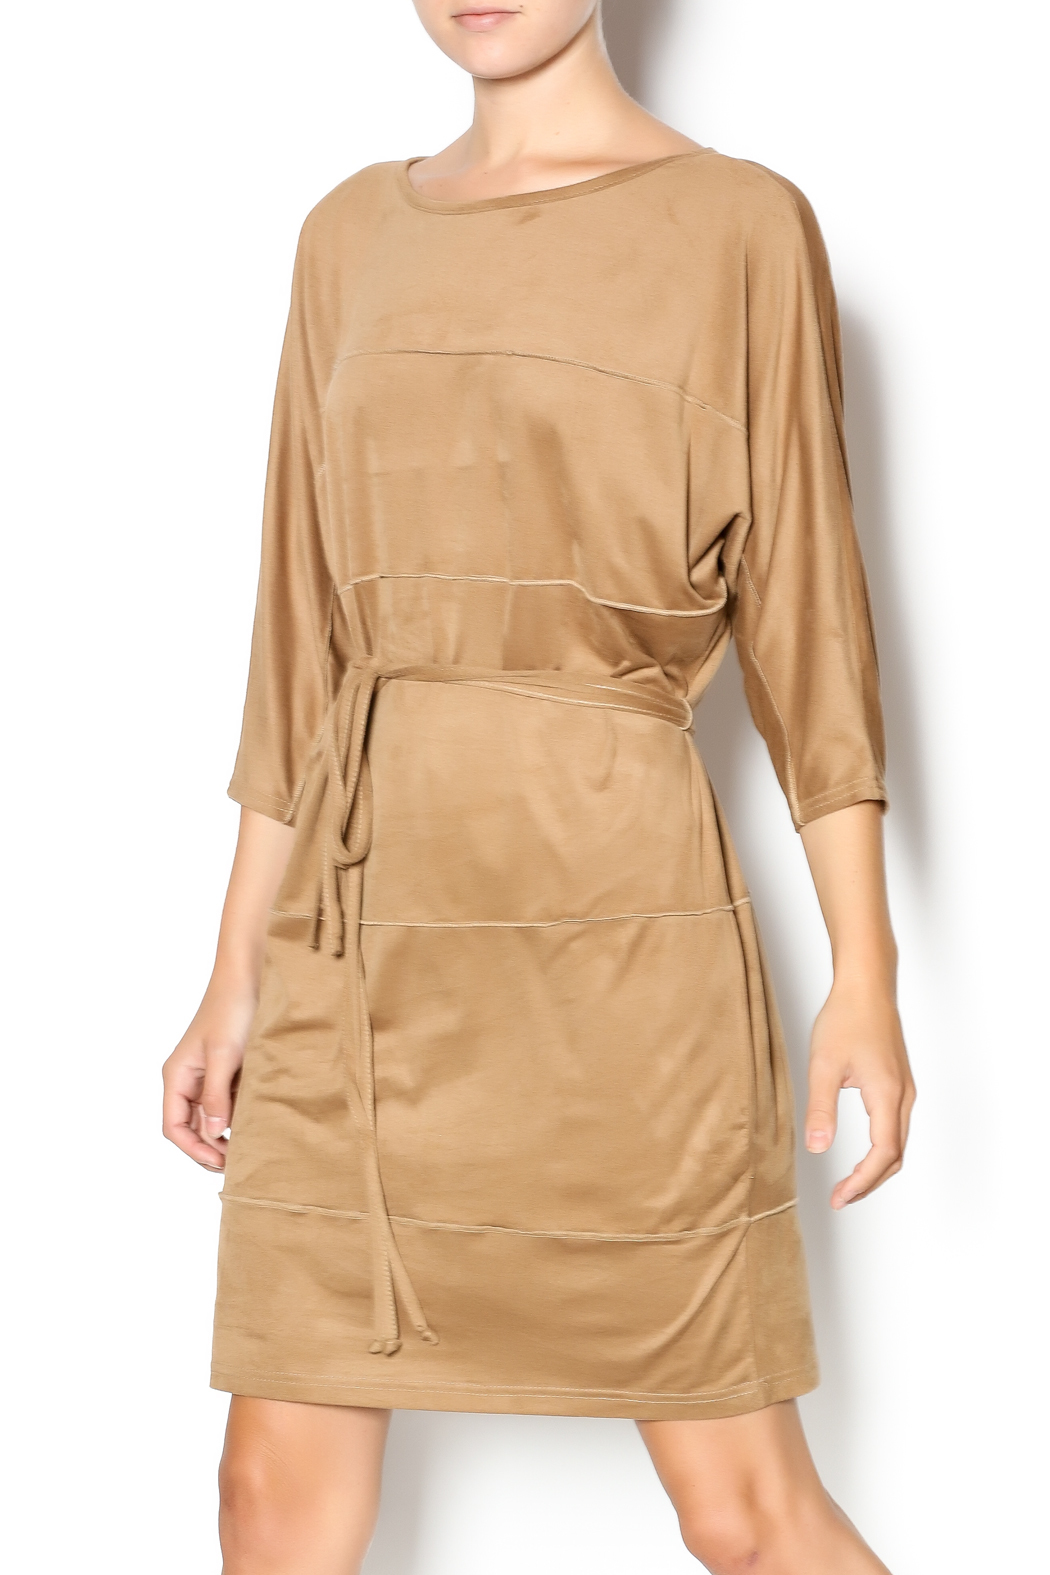 MSK Faux Suede Dress - Front Cropped Image